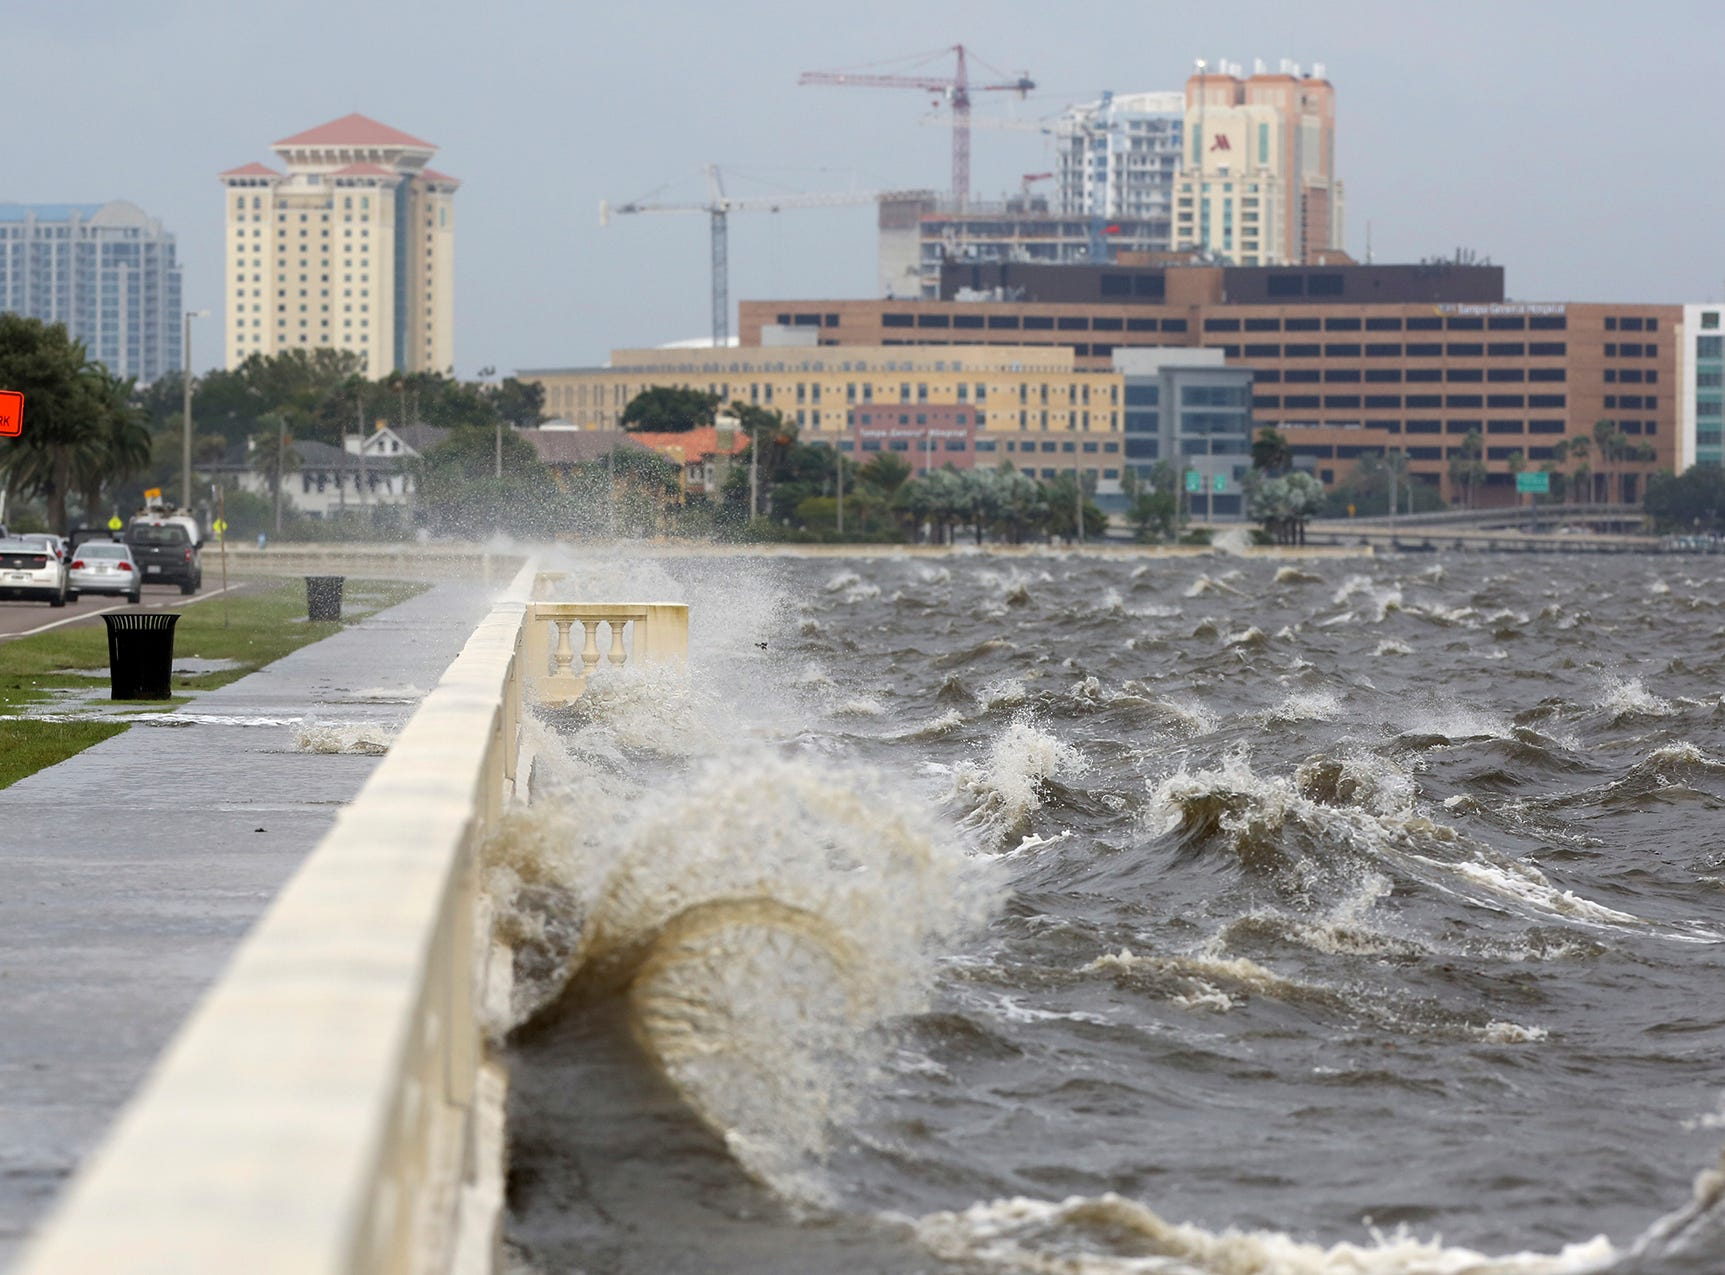 While the panhandle is taking the brunt of Hurricane Michael,on Wednesday, Oct. 10, 2018,  Bayshore Blvd. in Tampa, Fla., experienced some flooding from a choppy Tampa Bay which is more than 300 miles from where the storm's eye made landfall.